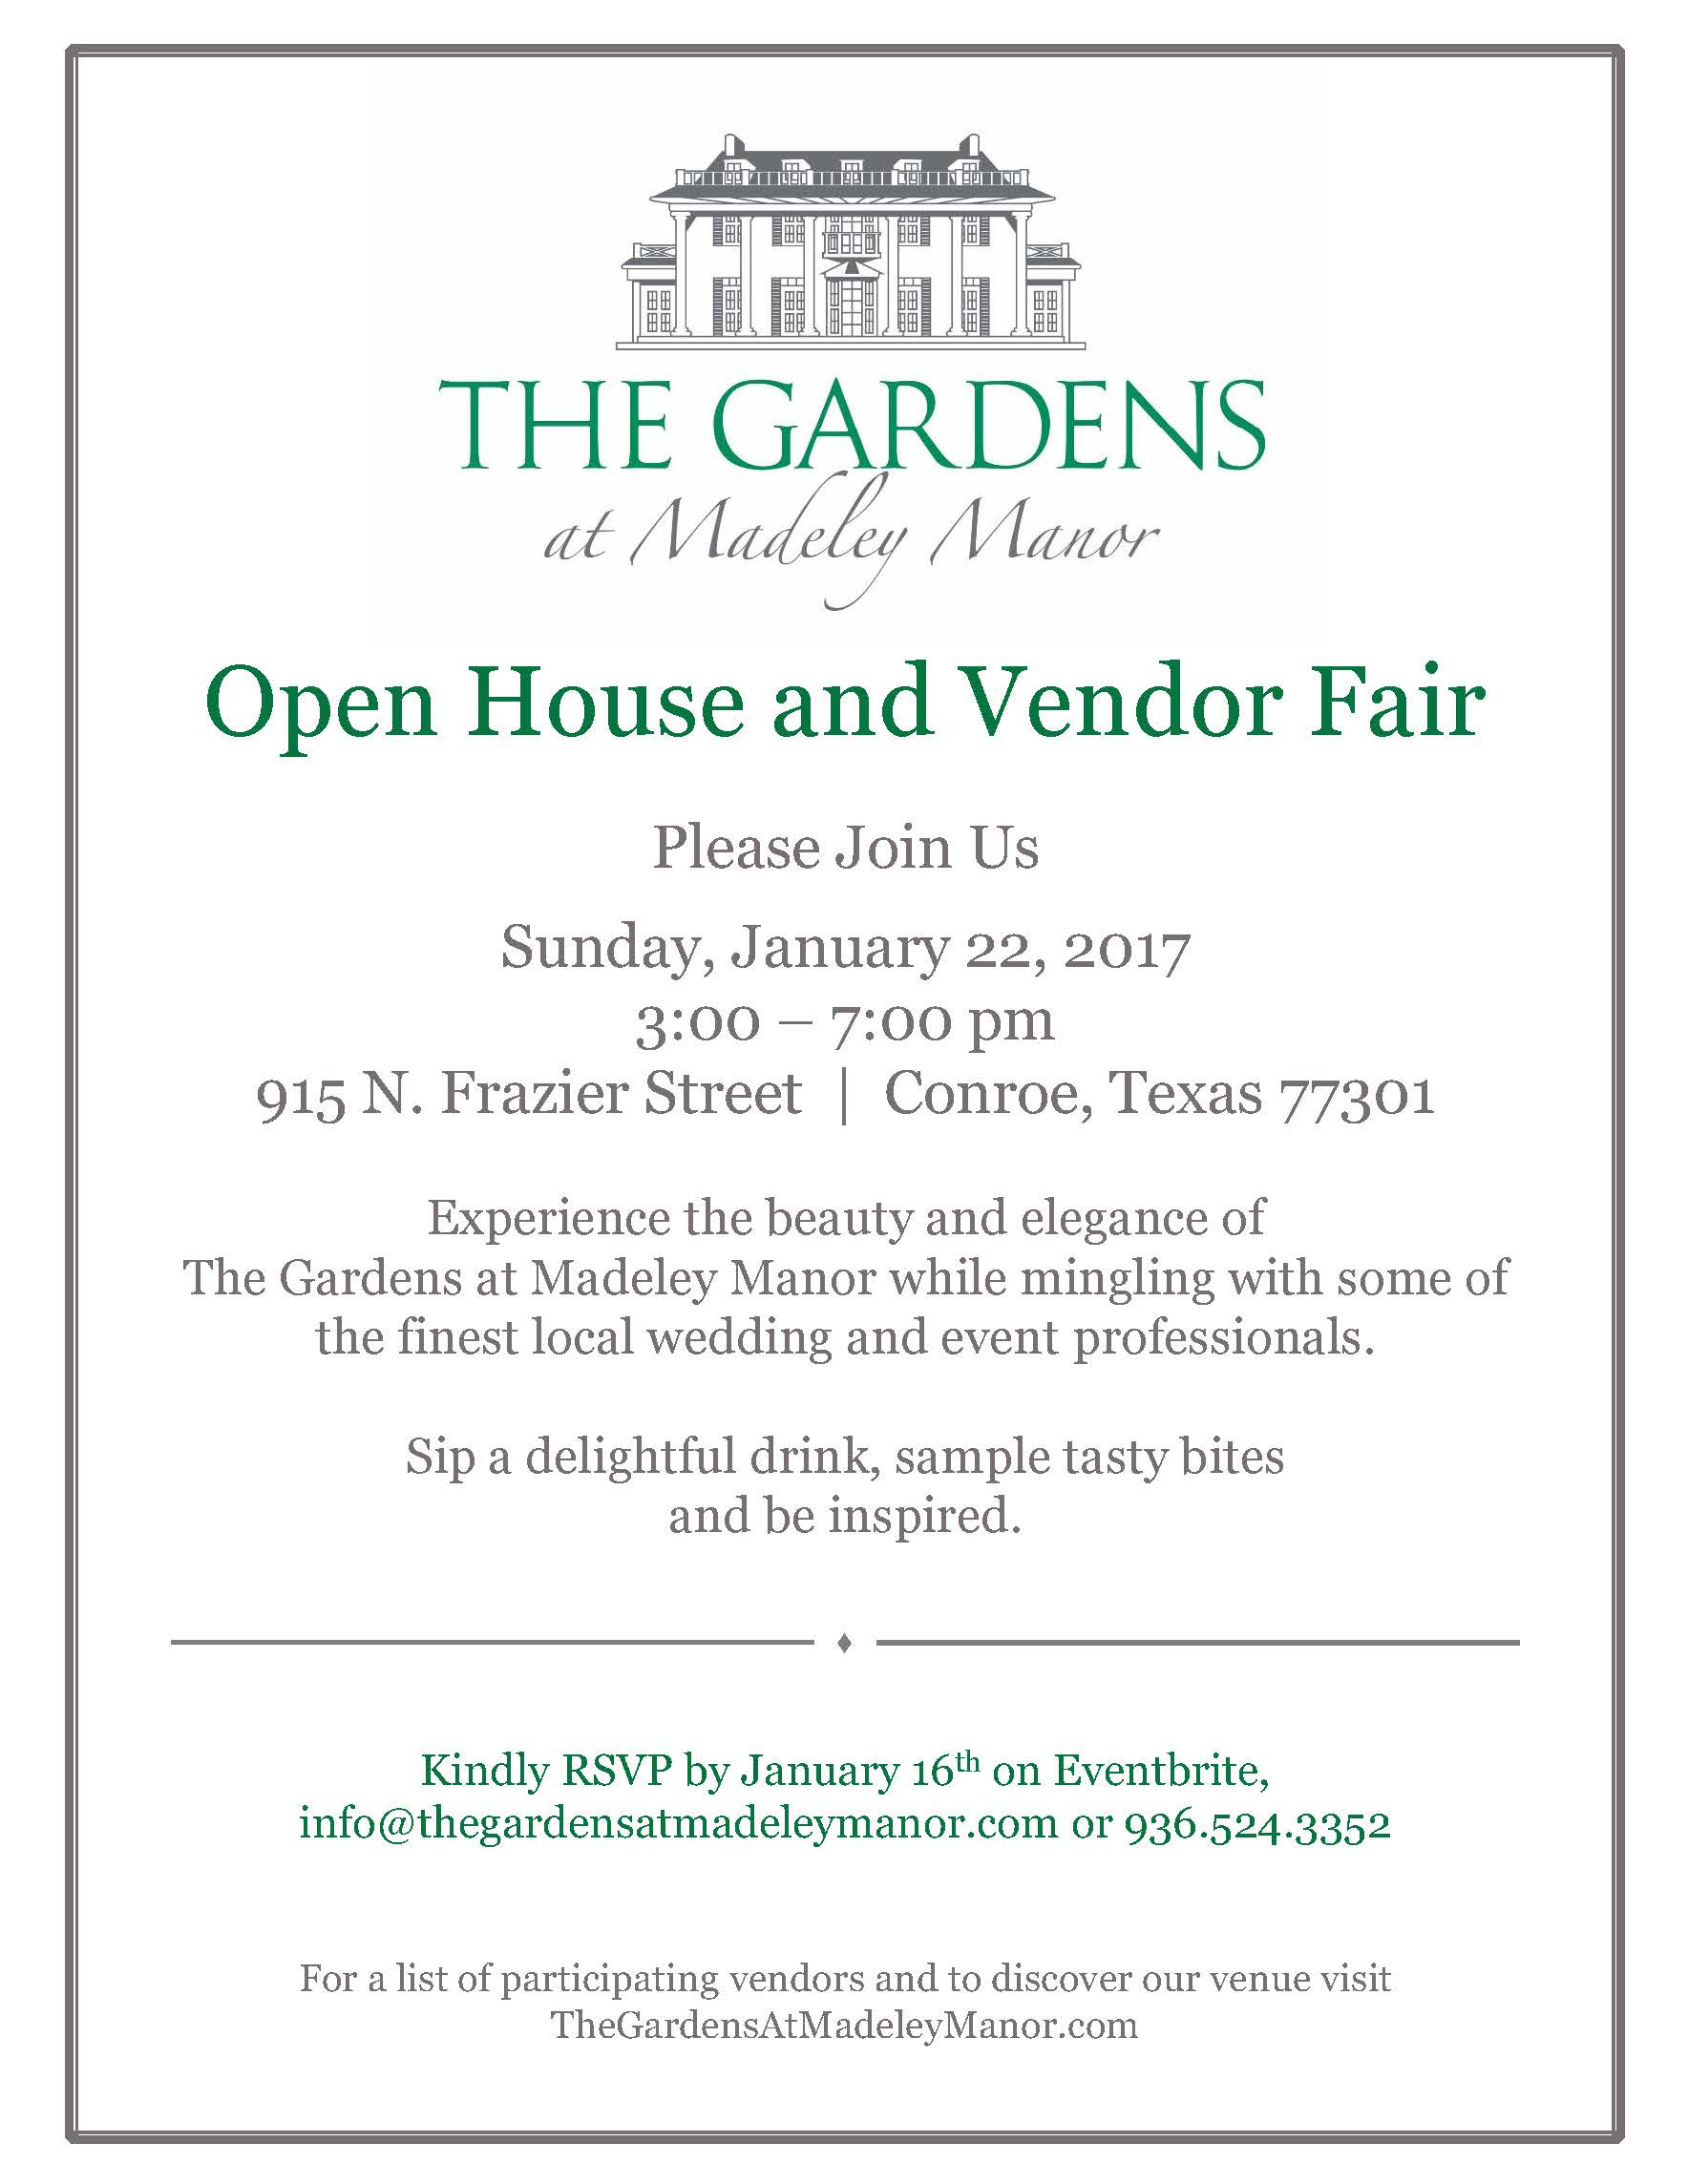 The Gardens At Madeley Manor Open House And Vendor Fair Registration Sun Jan 22 2017 At 3 00